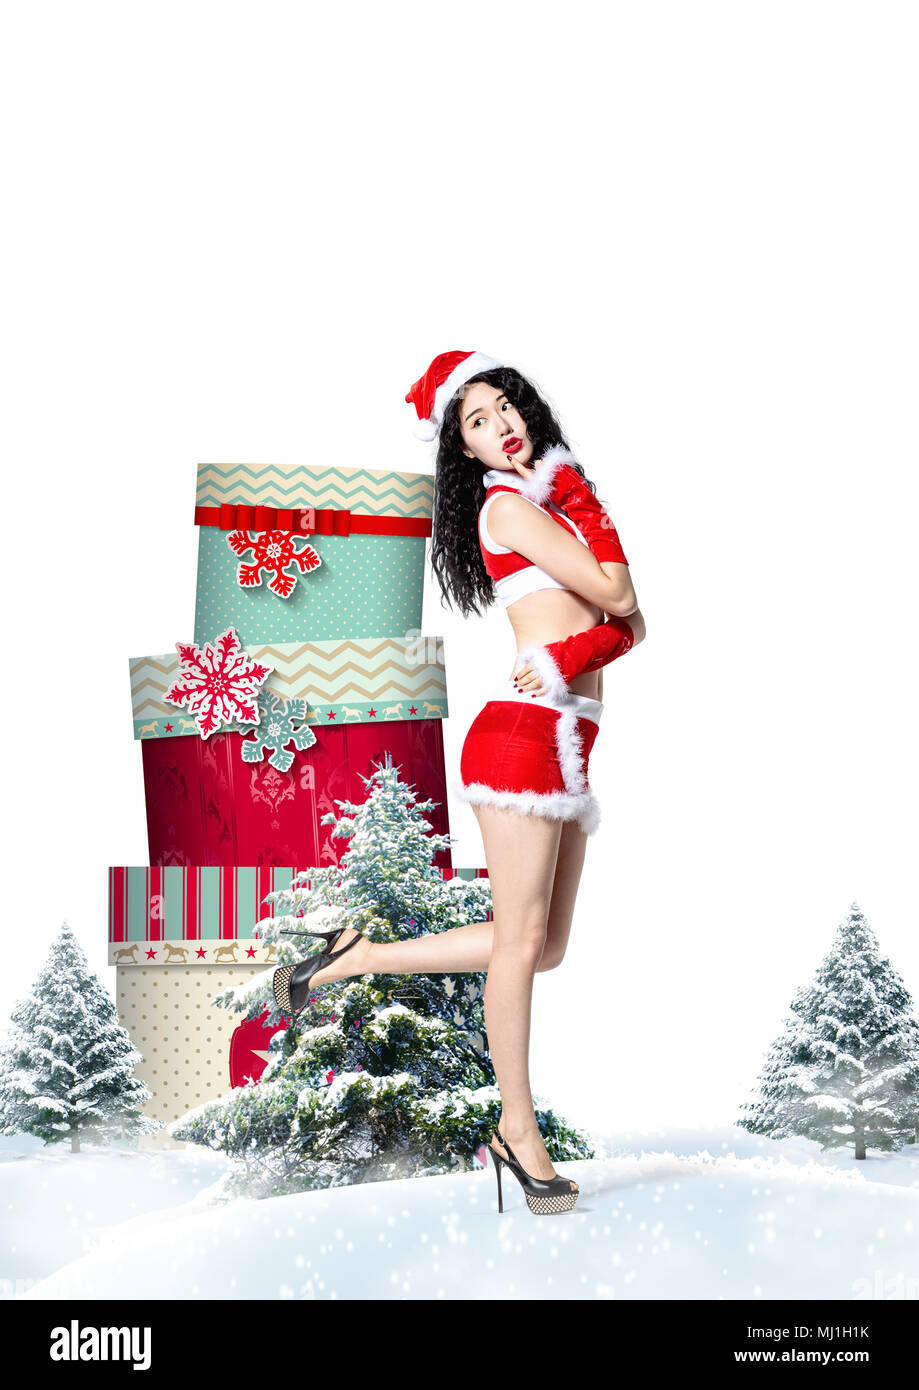 Young women and Christmas gifts Stock Photo: 183202815 - Alamy